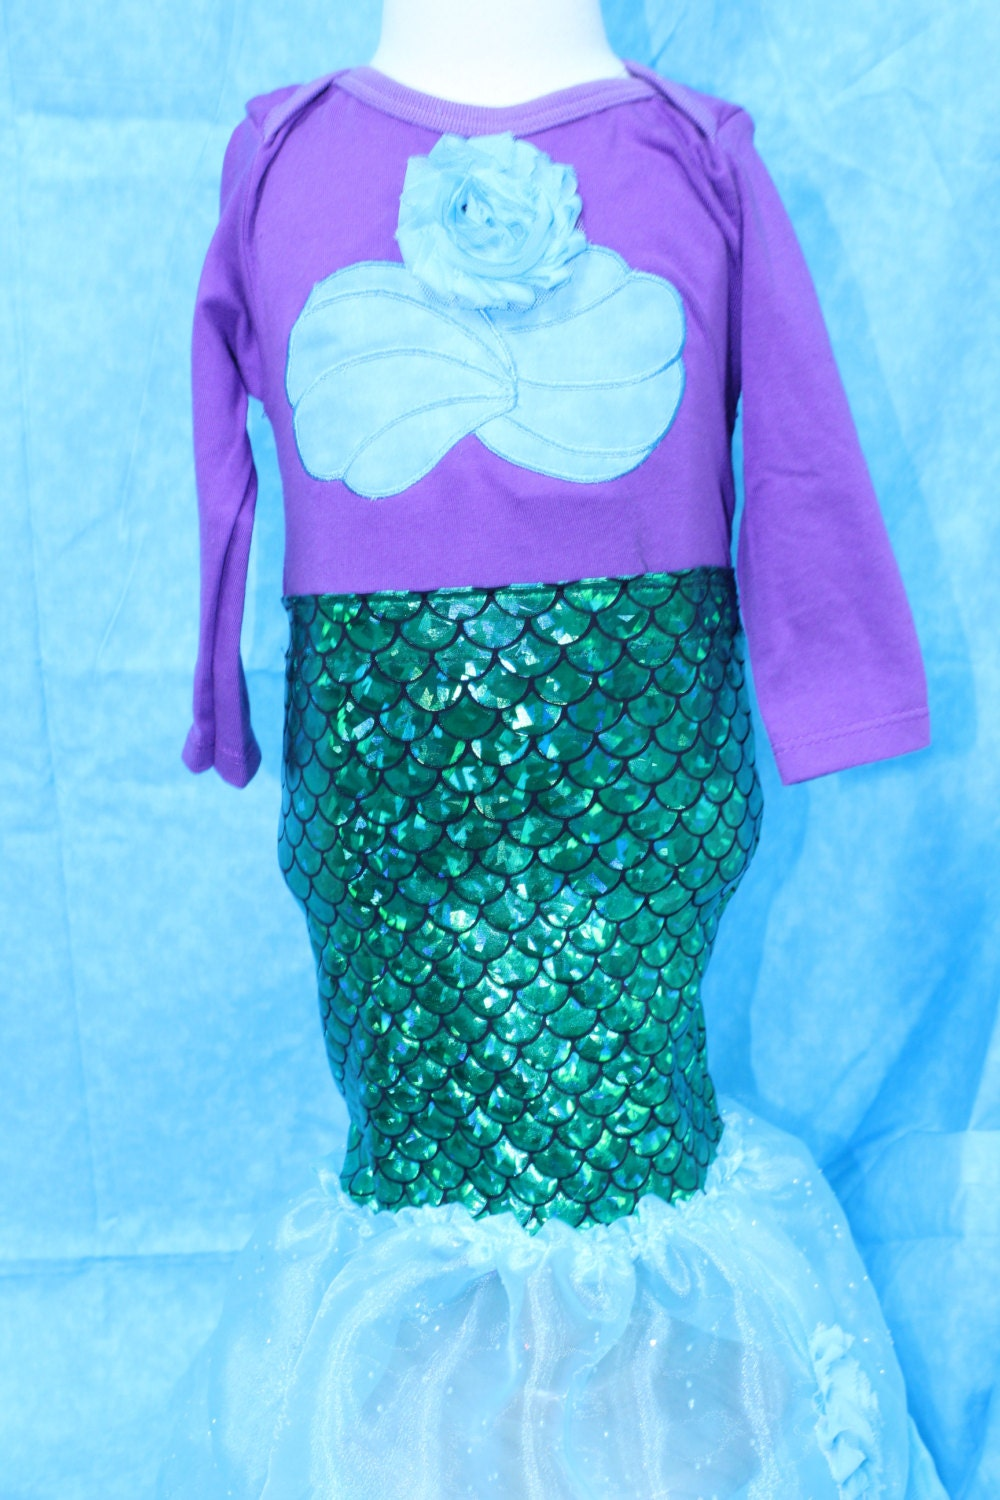 7acf7a2307 Mermaid costume,Halloween costume,Ariel costume,Purple mermaid,blue  iridescent mermaid tail dress,Tropical mermaid costume Halloween